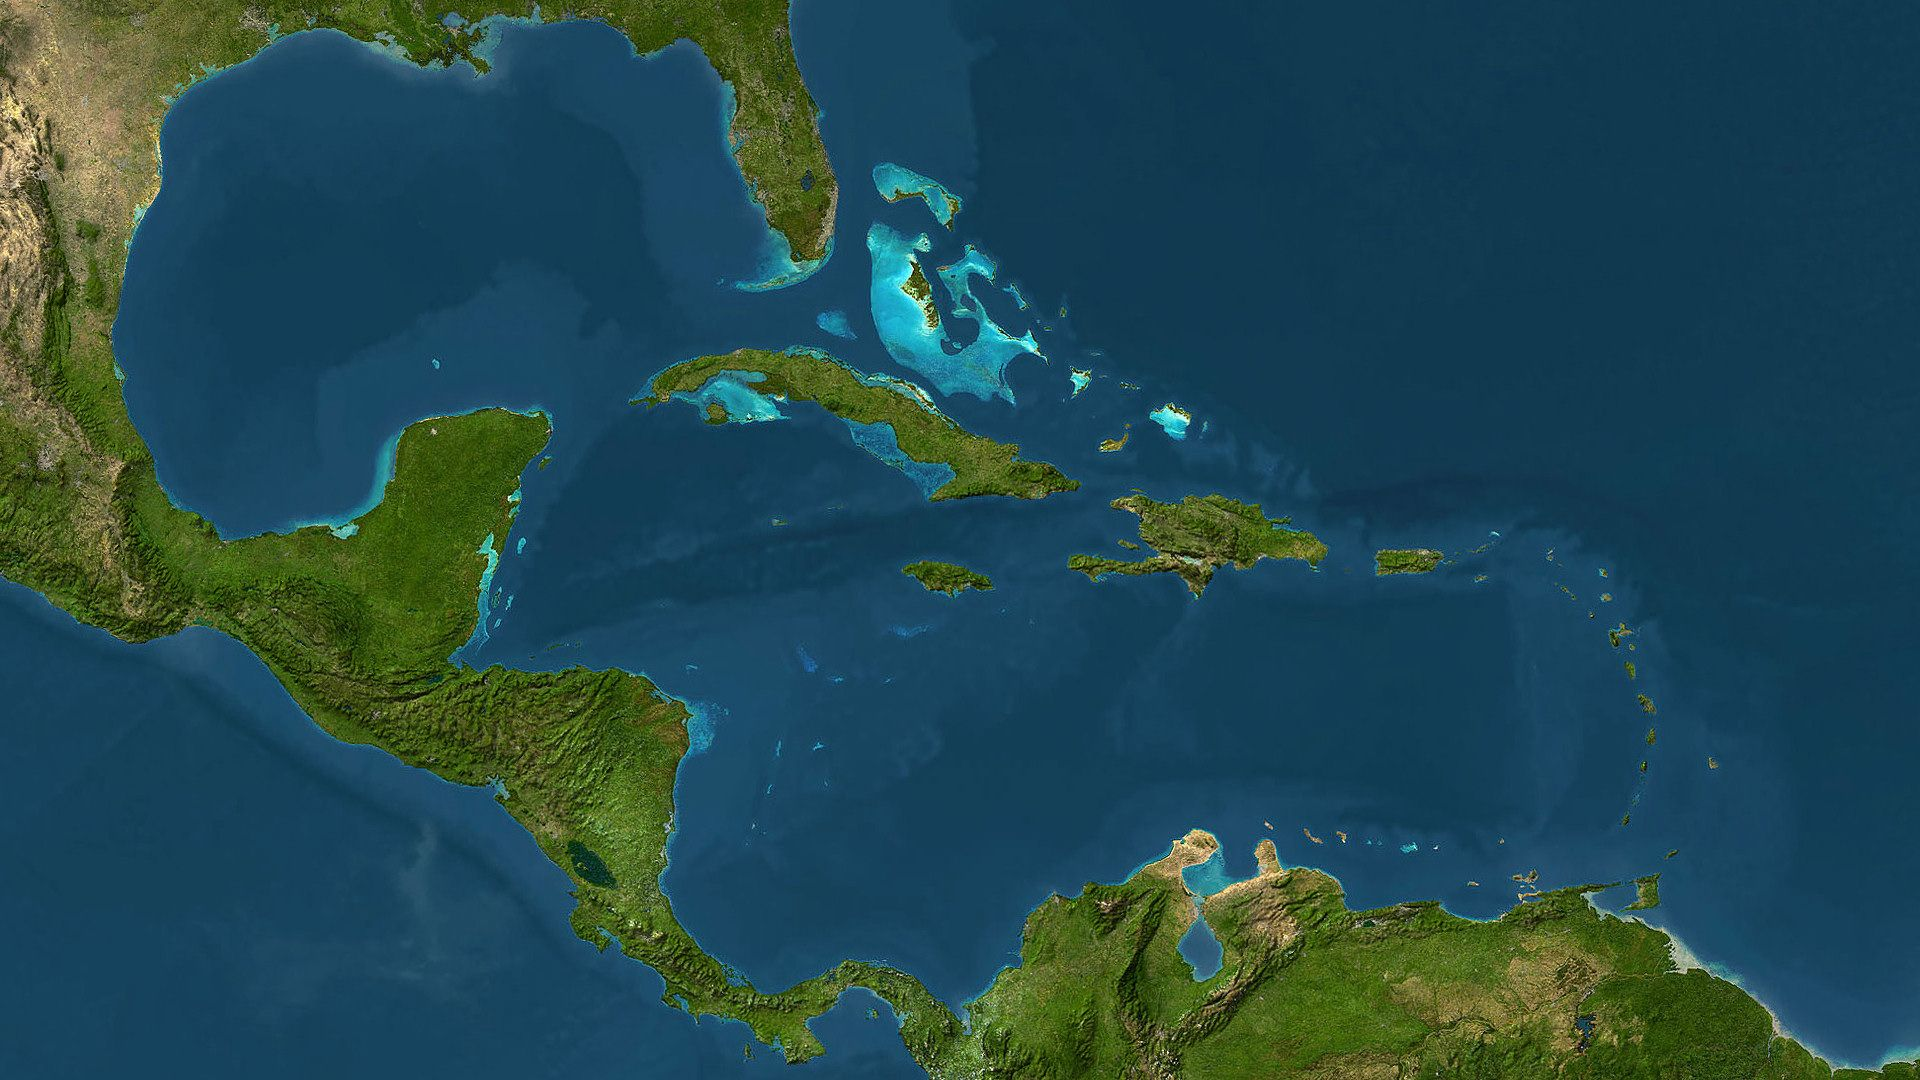 The Caribbean with the Bahamas and the Gulf of Mexico, Atlantic Ocean.